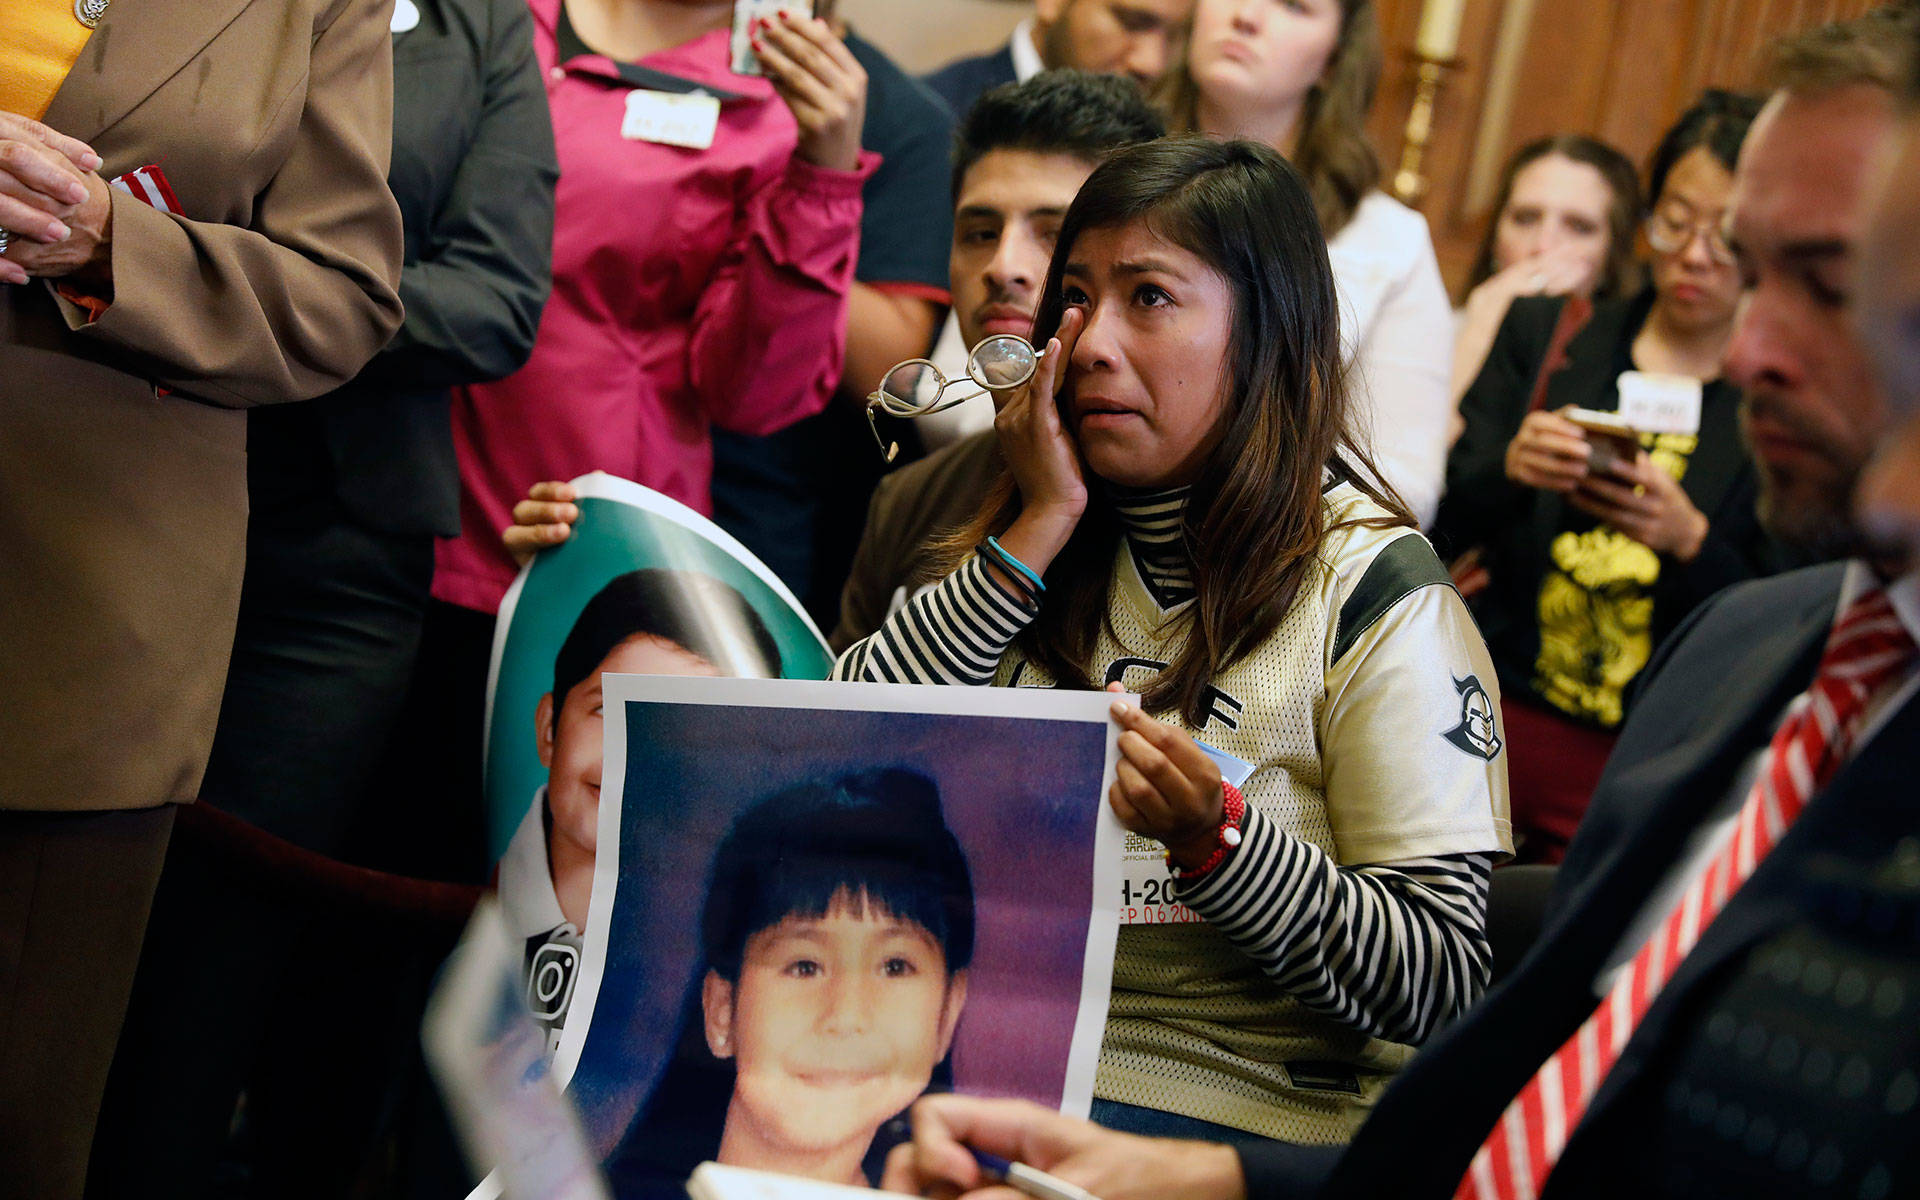 Karen Caudillo cries as she looks on during a news conference about President Donald Trump's decision to end the Deferred Action for Childhood Arrivals (DACA) program at the U.S. Capitol on September 6, 2017 in Washington, D.C.